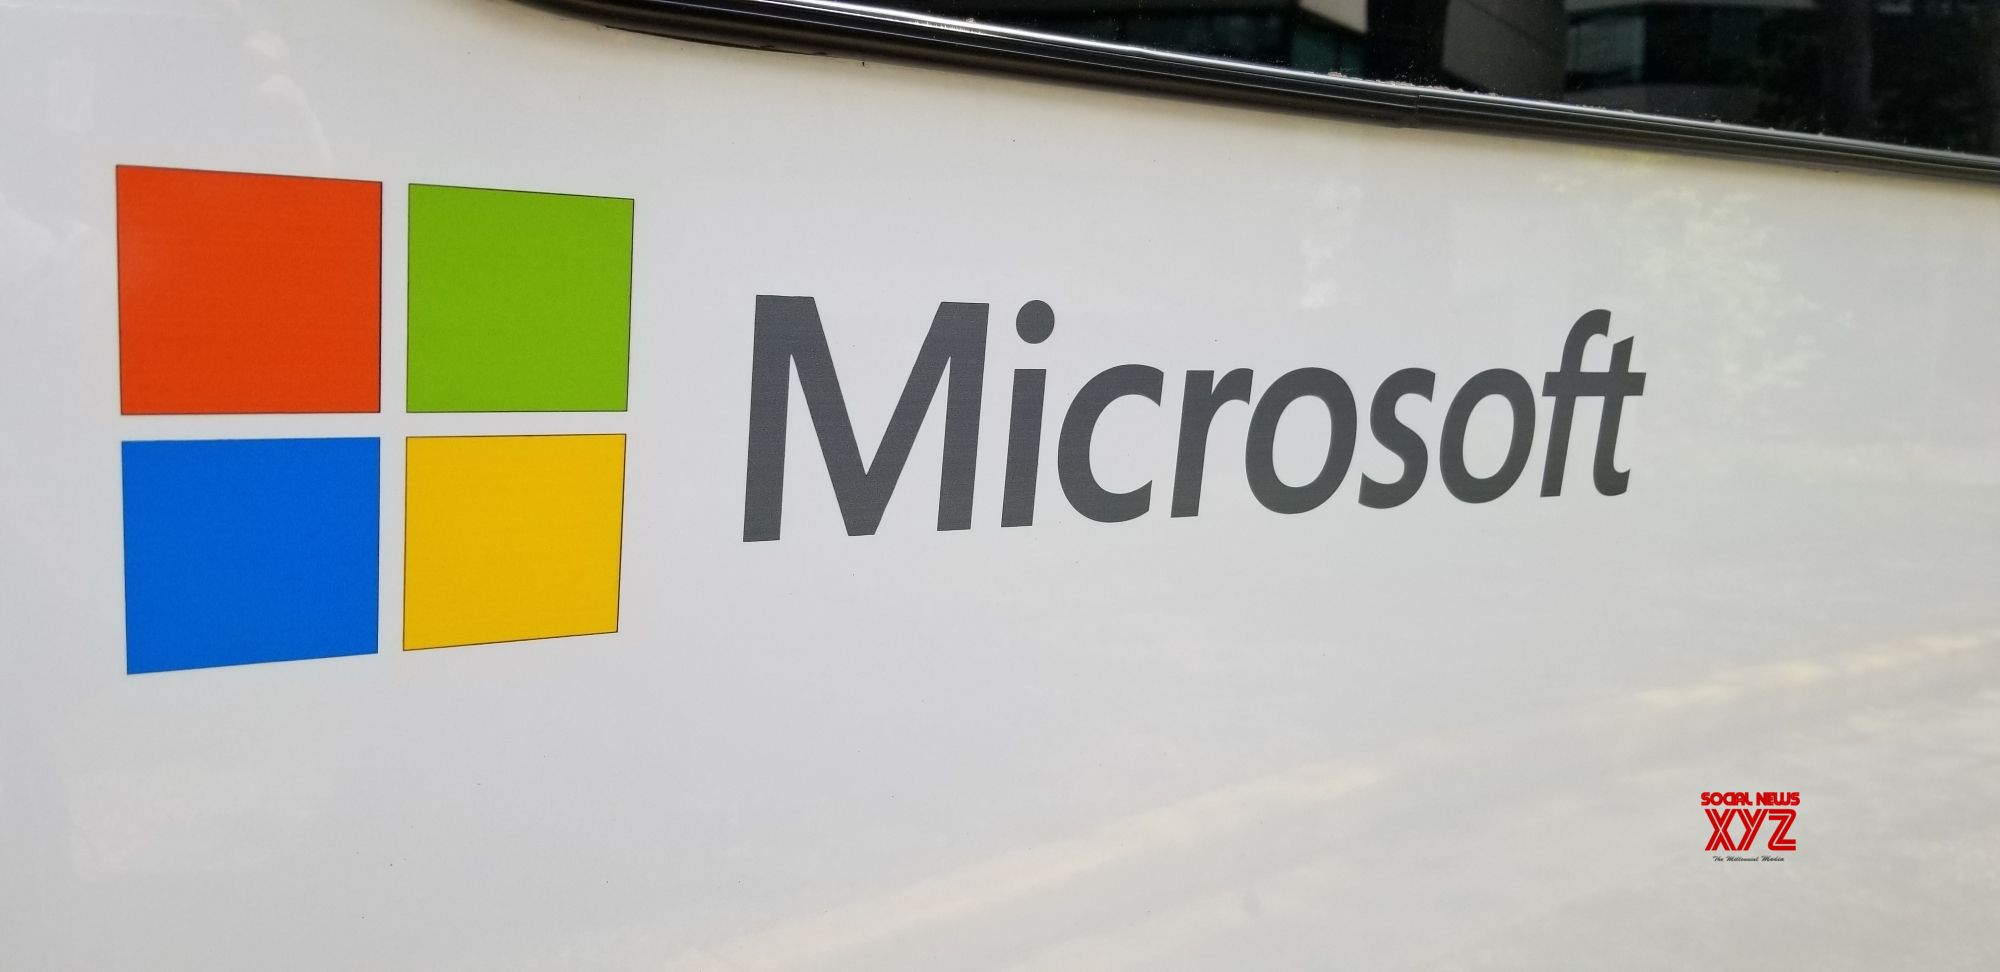 Regulation for facial recognition technology must start in 2019: Microsoft